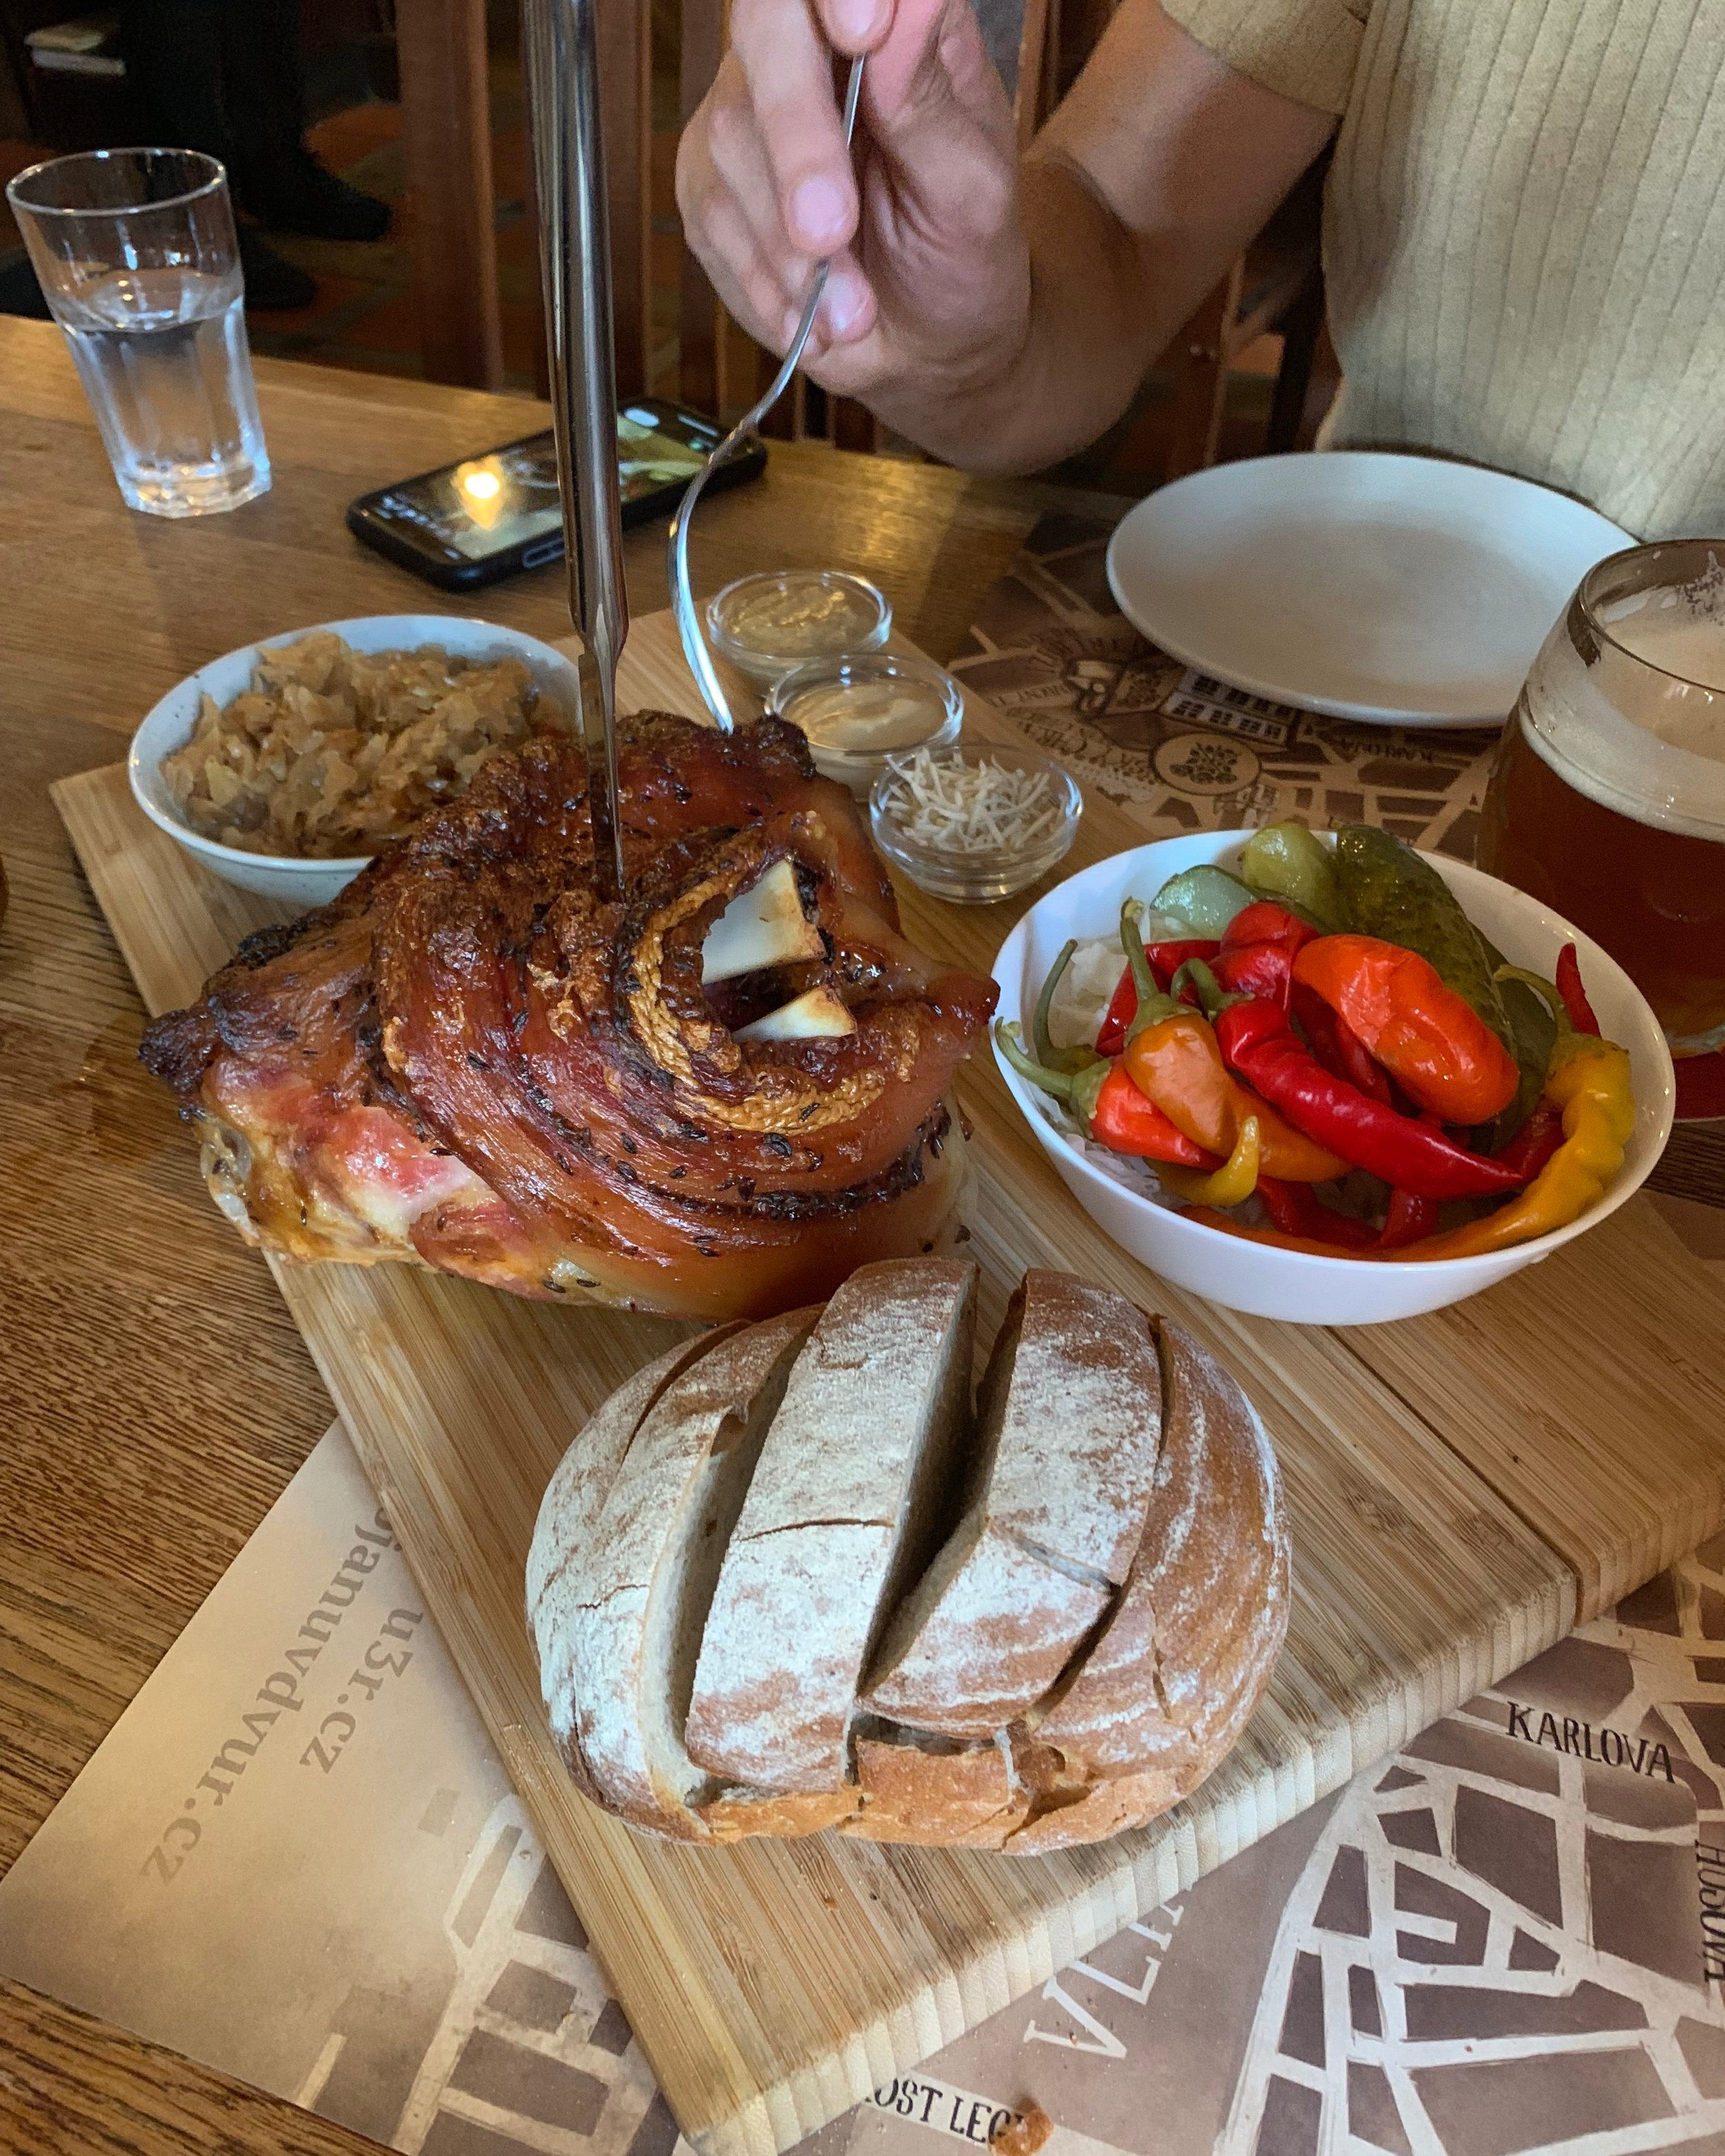 roasted pork knuckle with cabbage and bread and fixings!